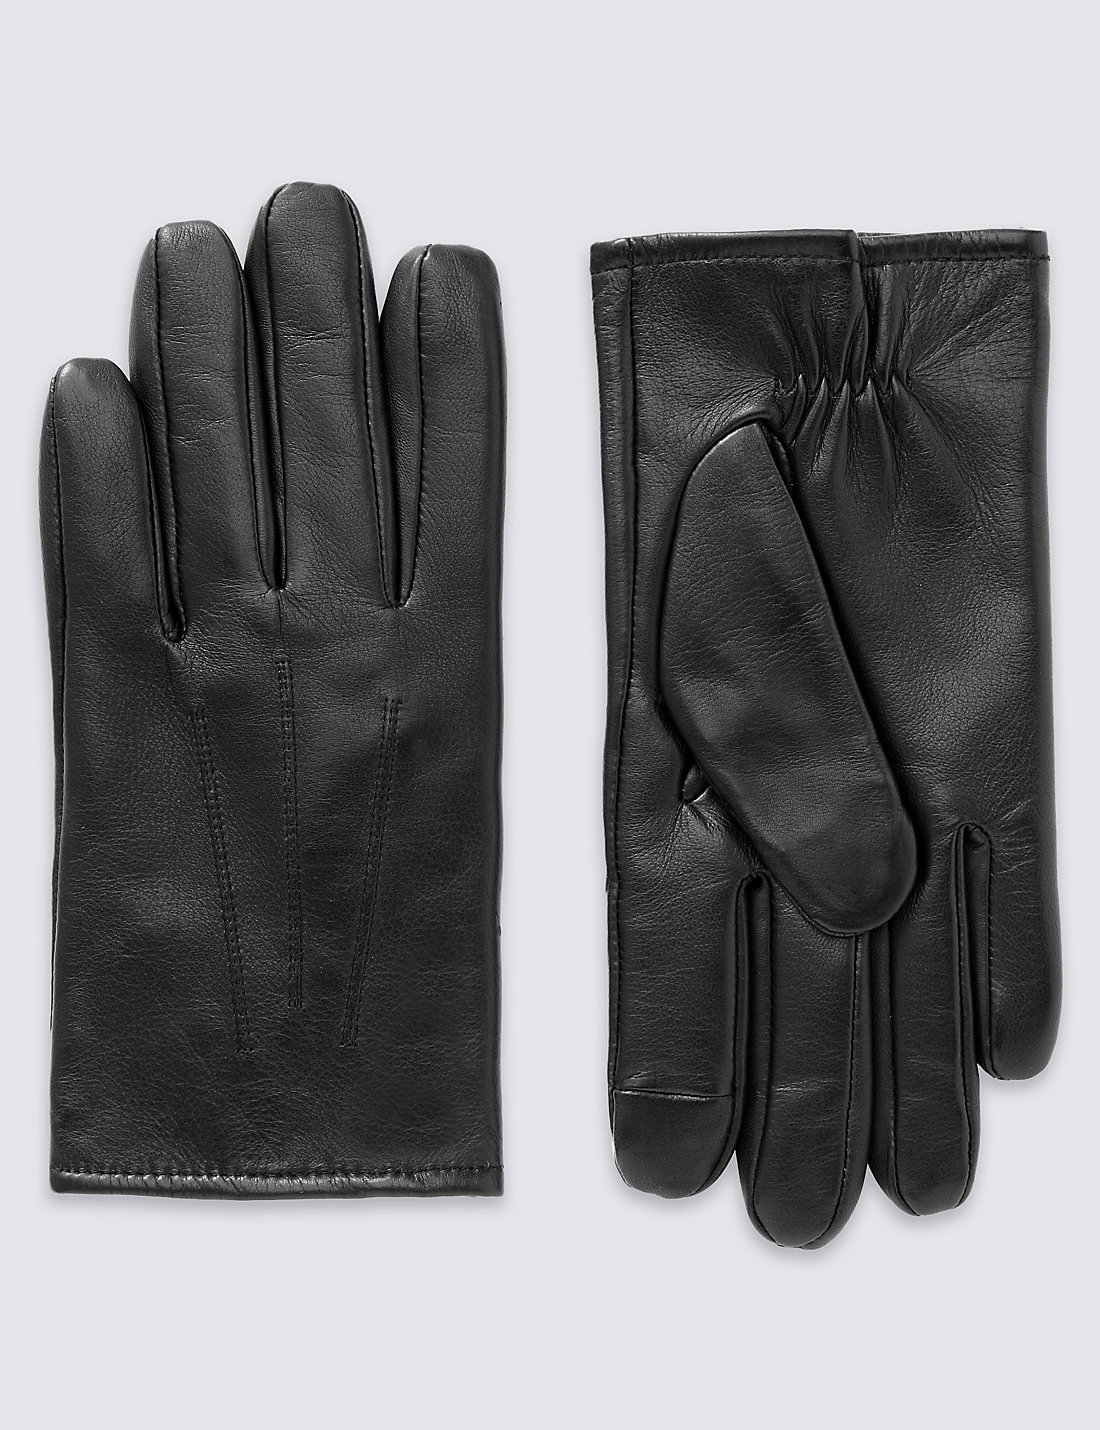 Xxl black leather gloves - Leather Gloves With Thinsulate Trade